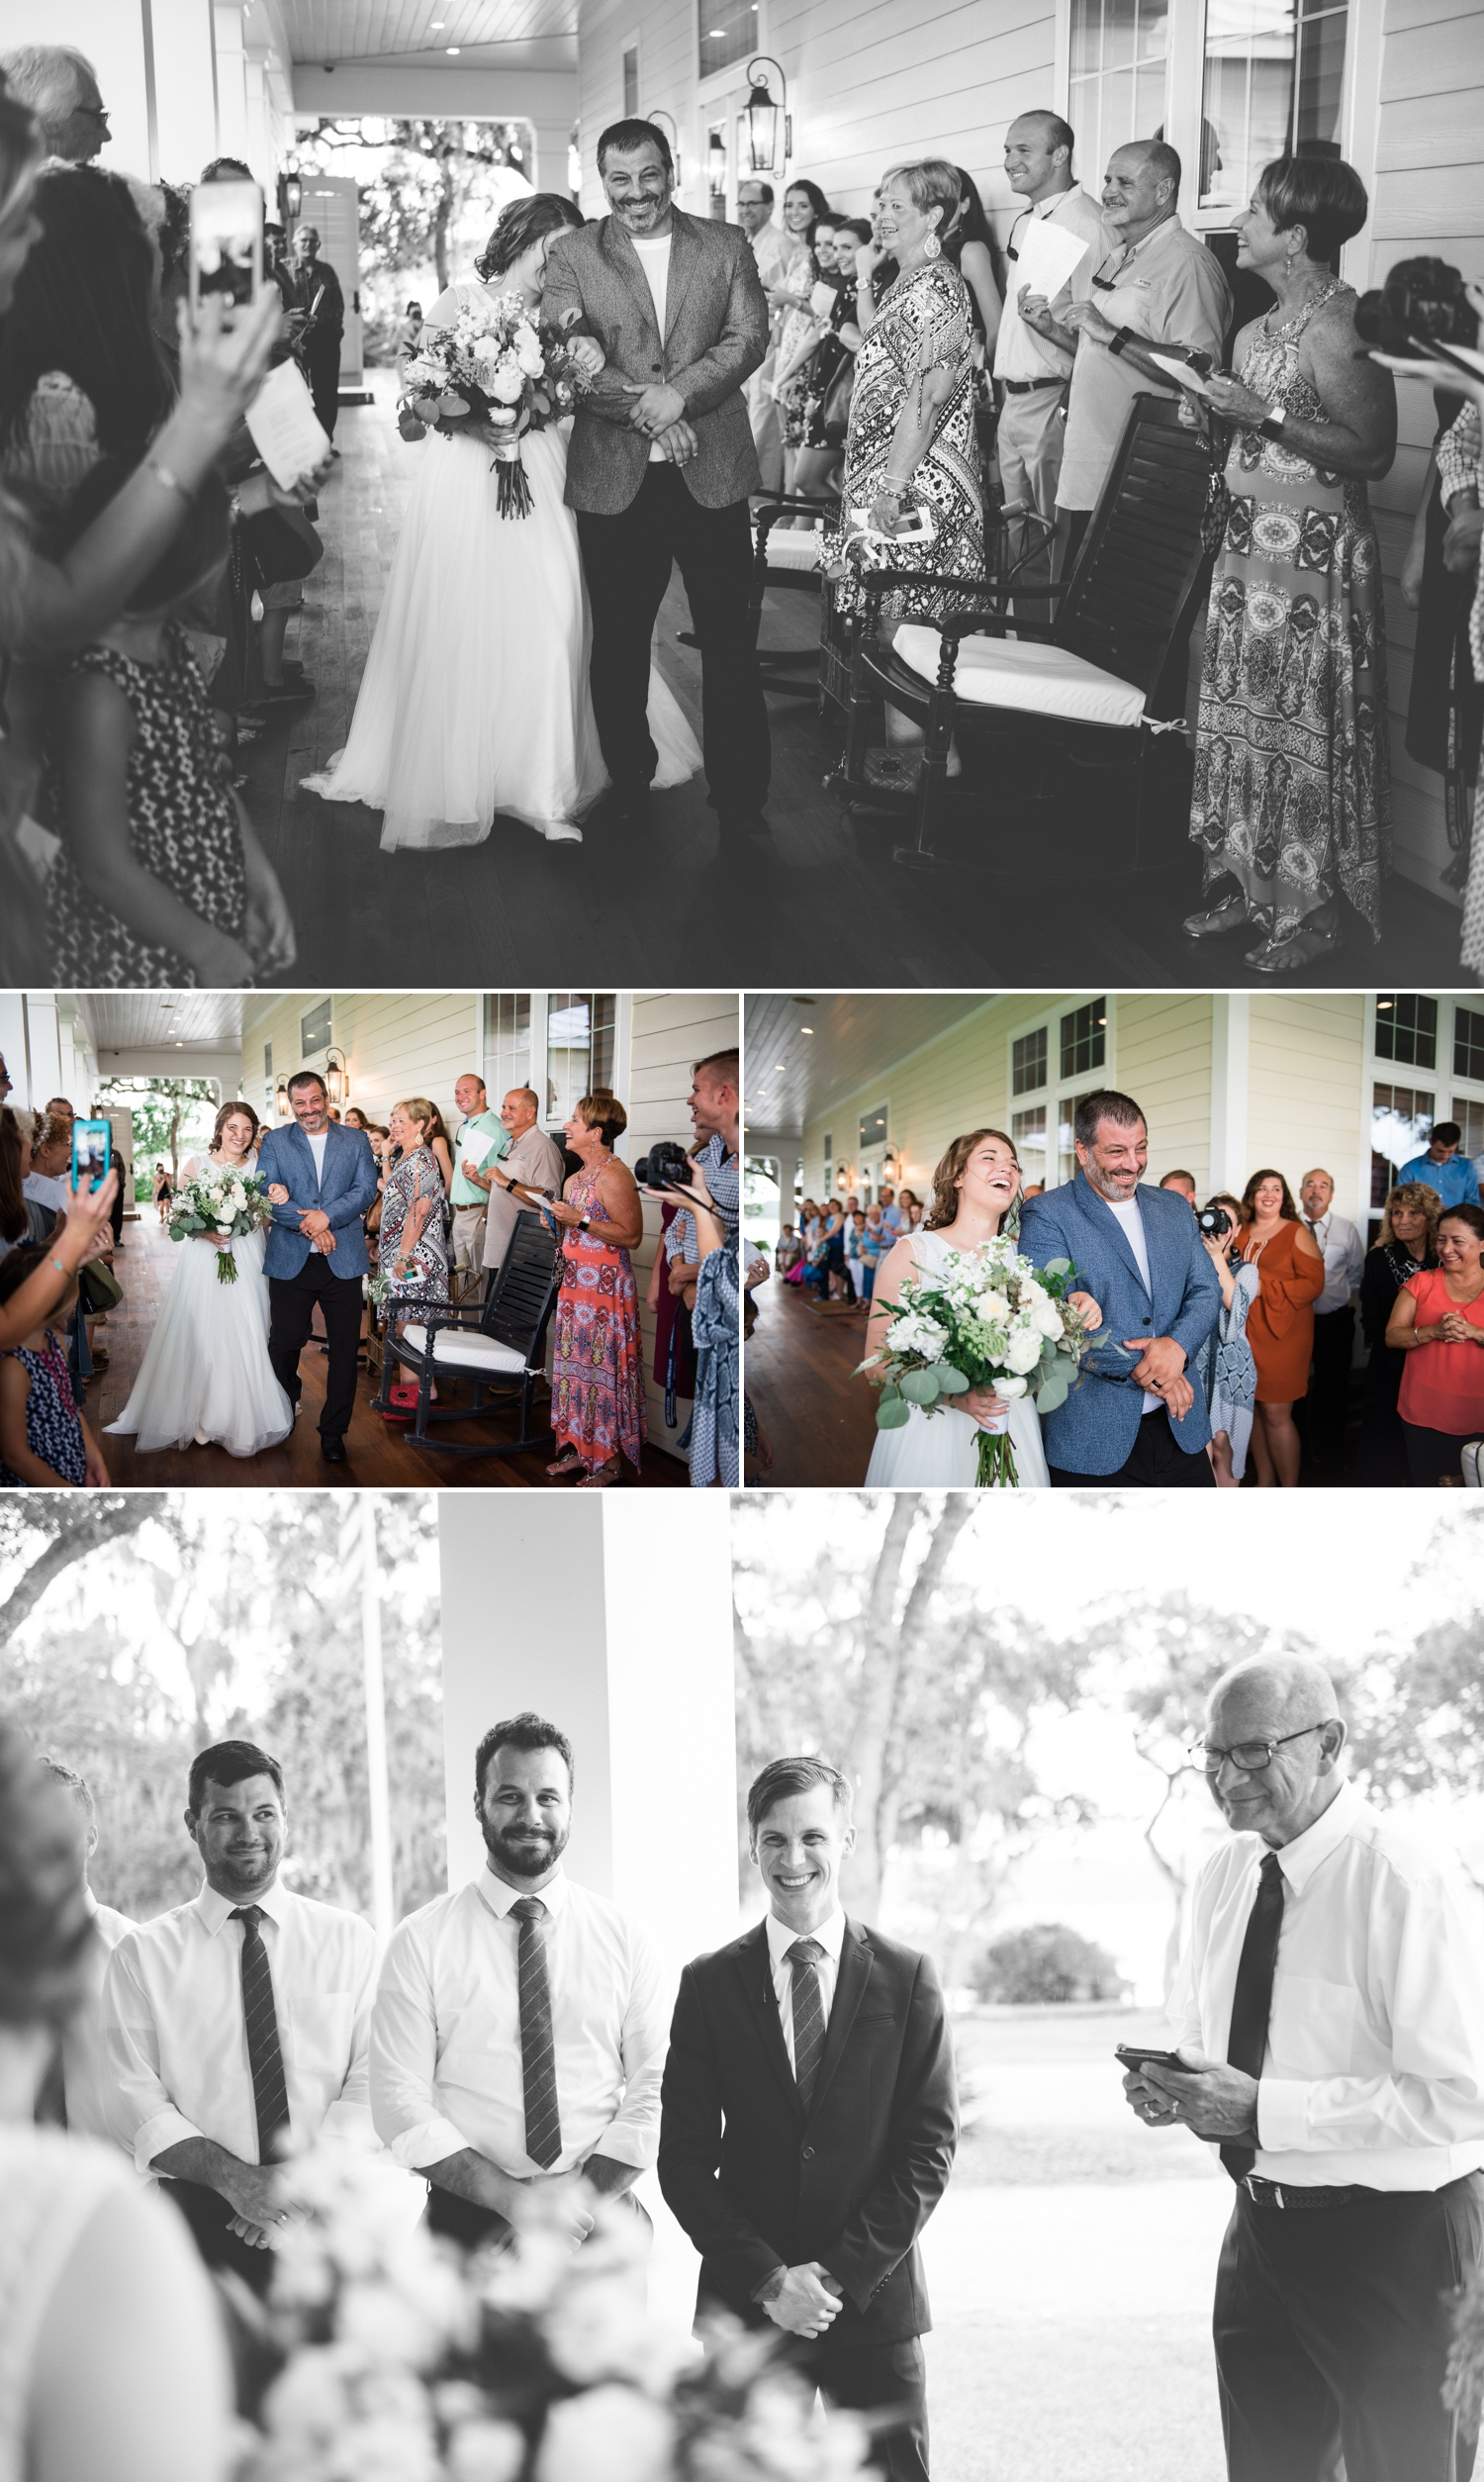 Rachel and Ryan Wedding 2 4.jpg